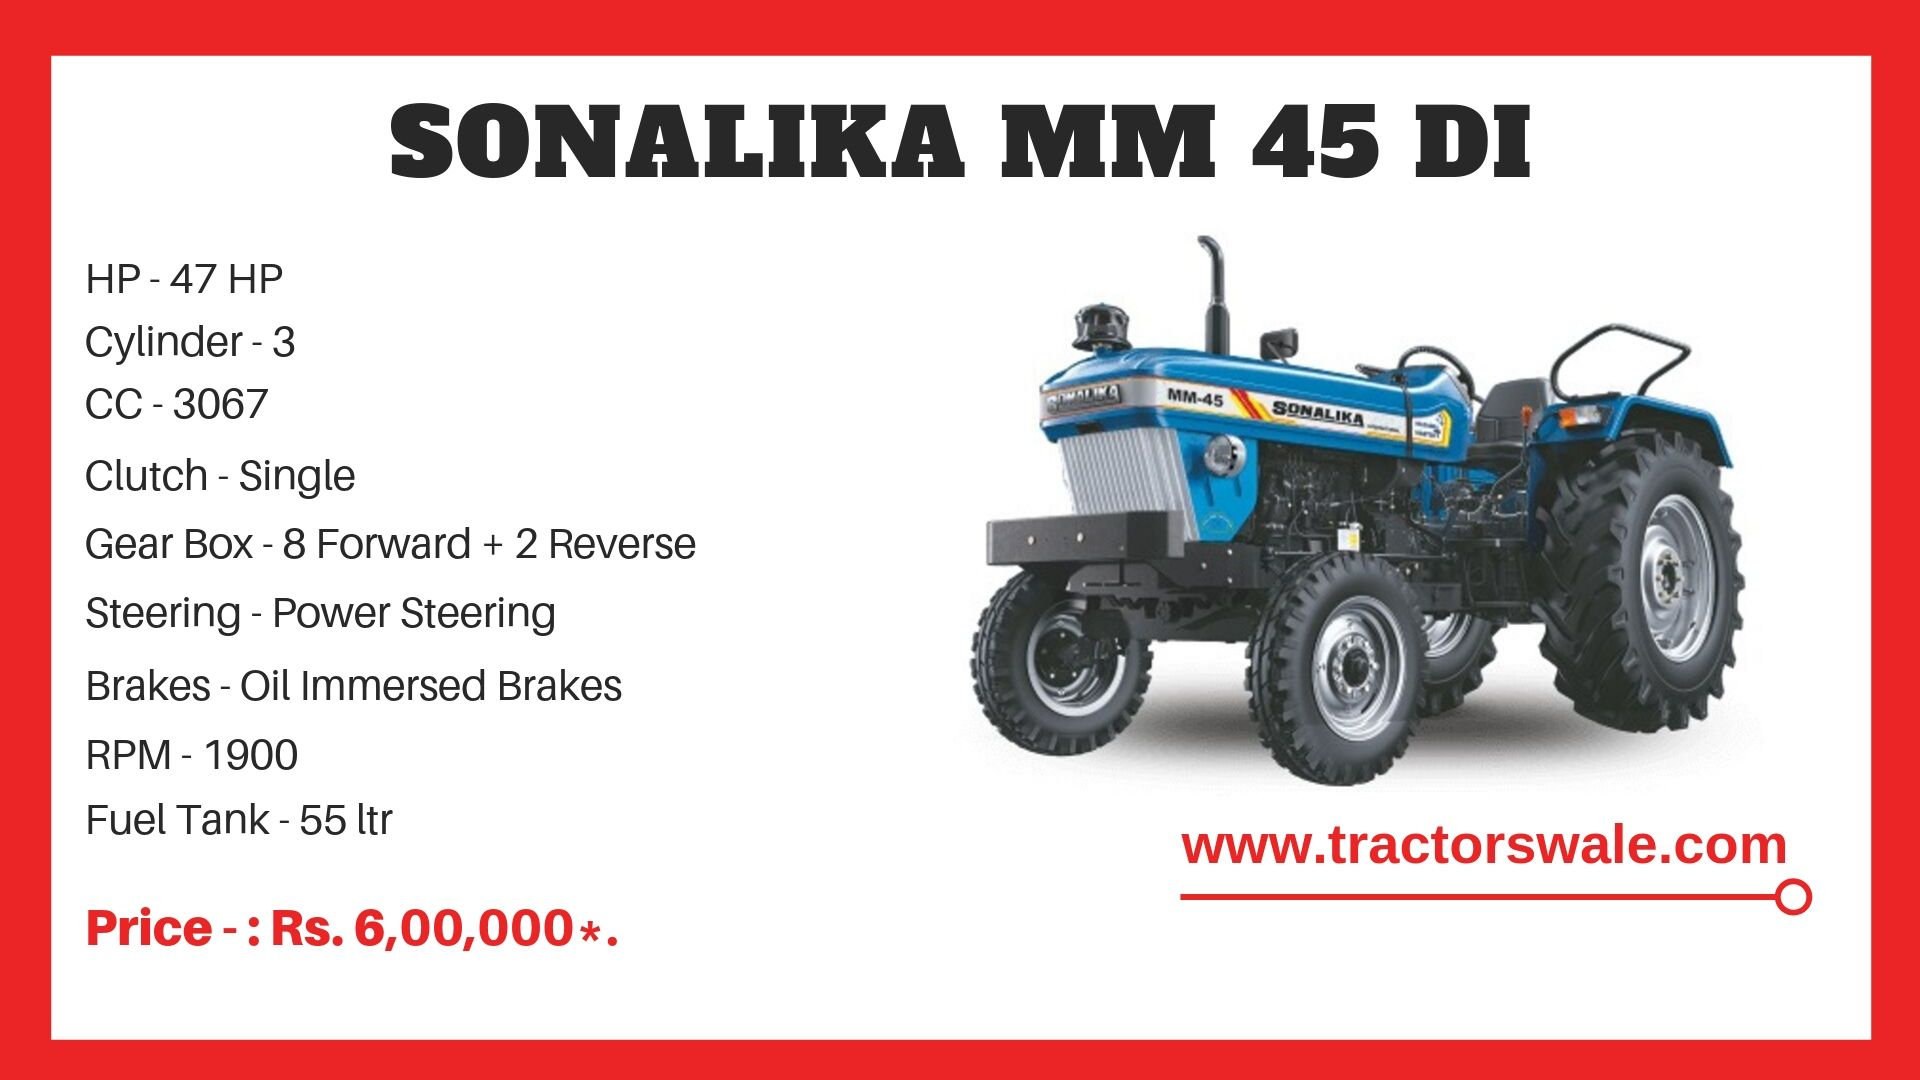 Sonalika MM 45 DI tractor specifications